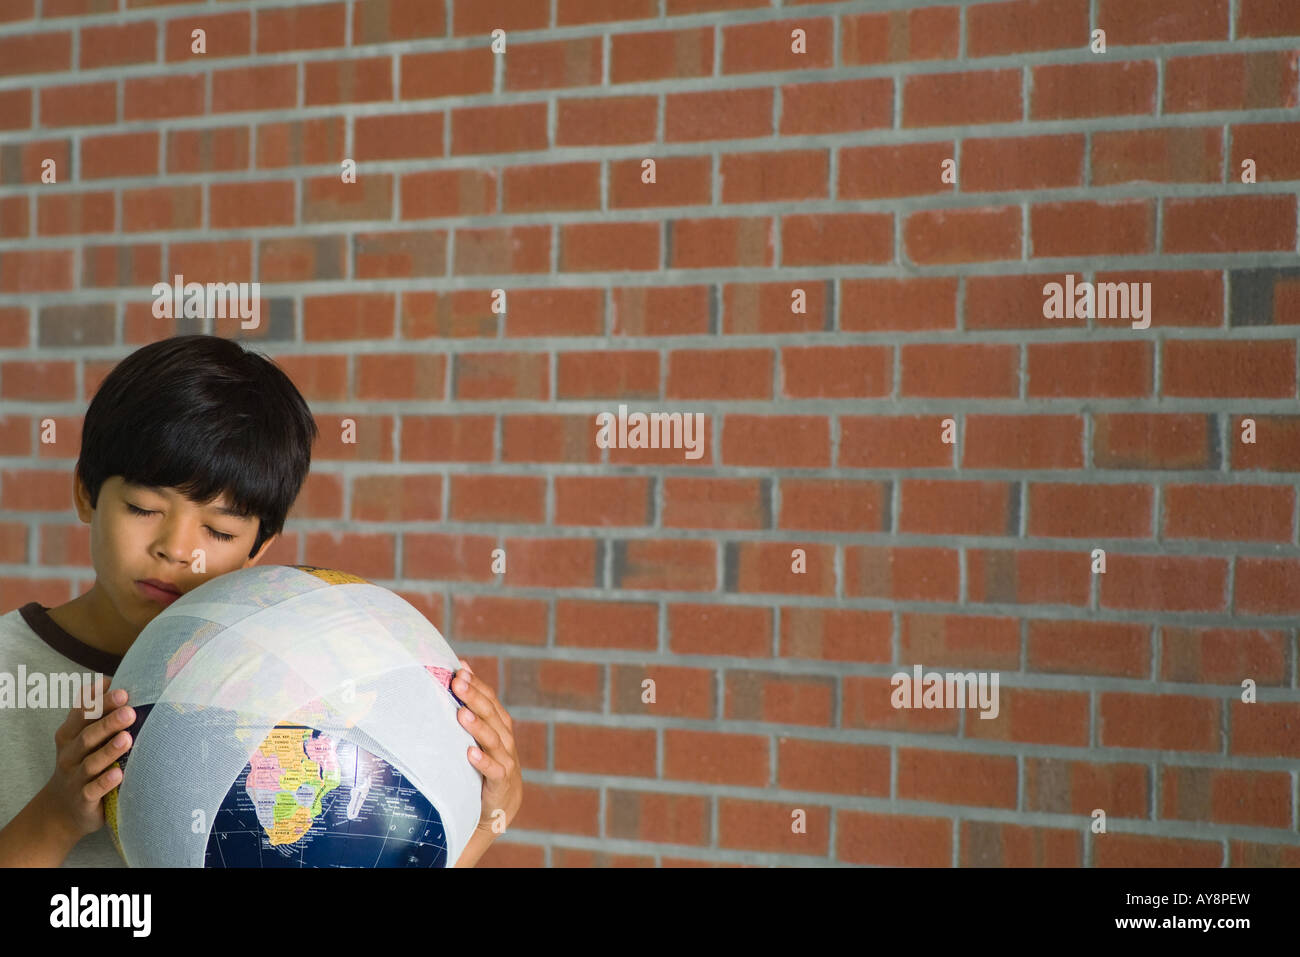 Boy holding globe wrapped in bandages against cheek, eyes closed - Stock Image